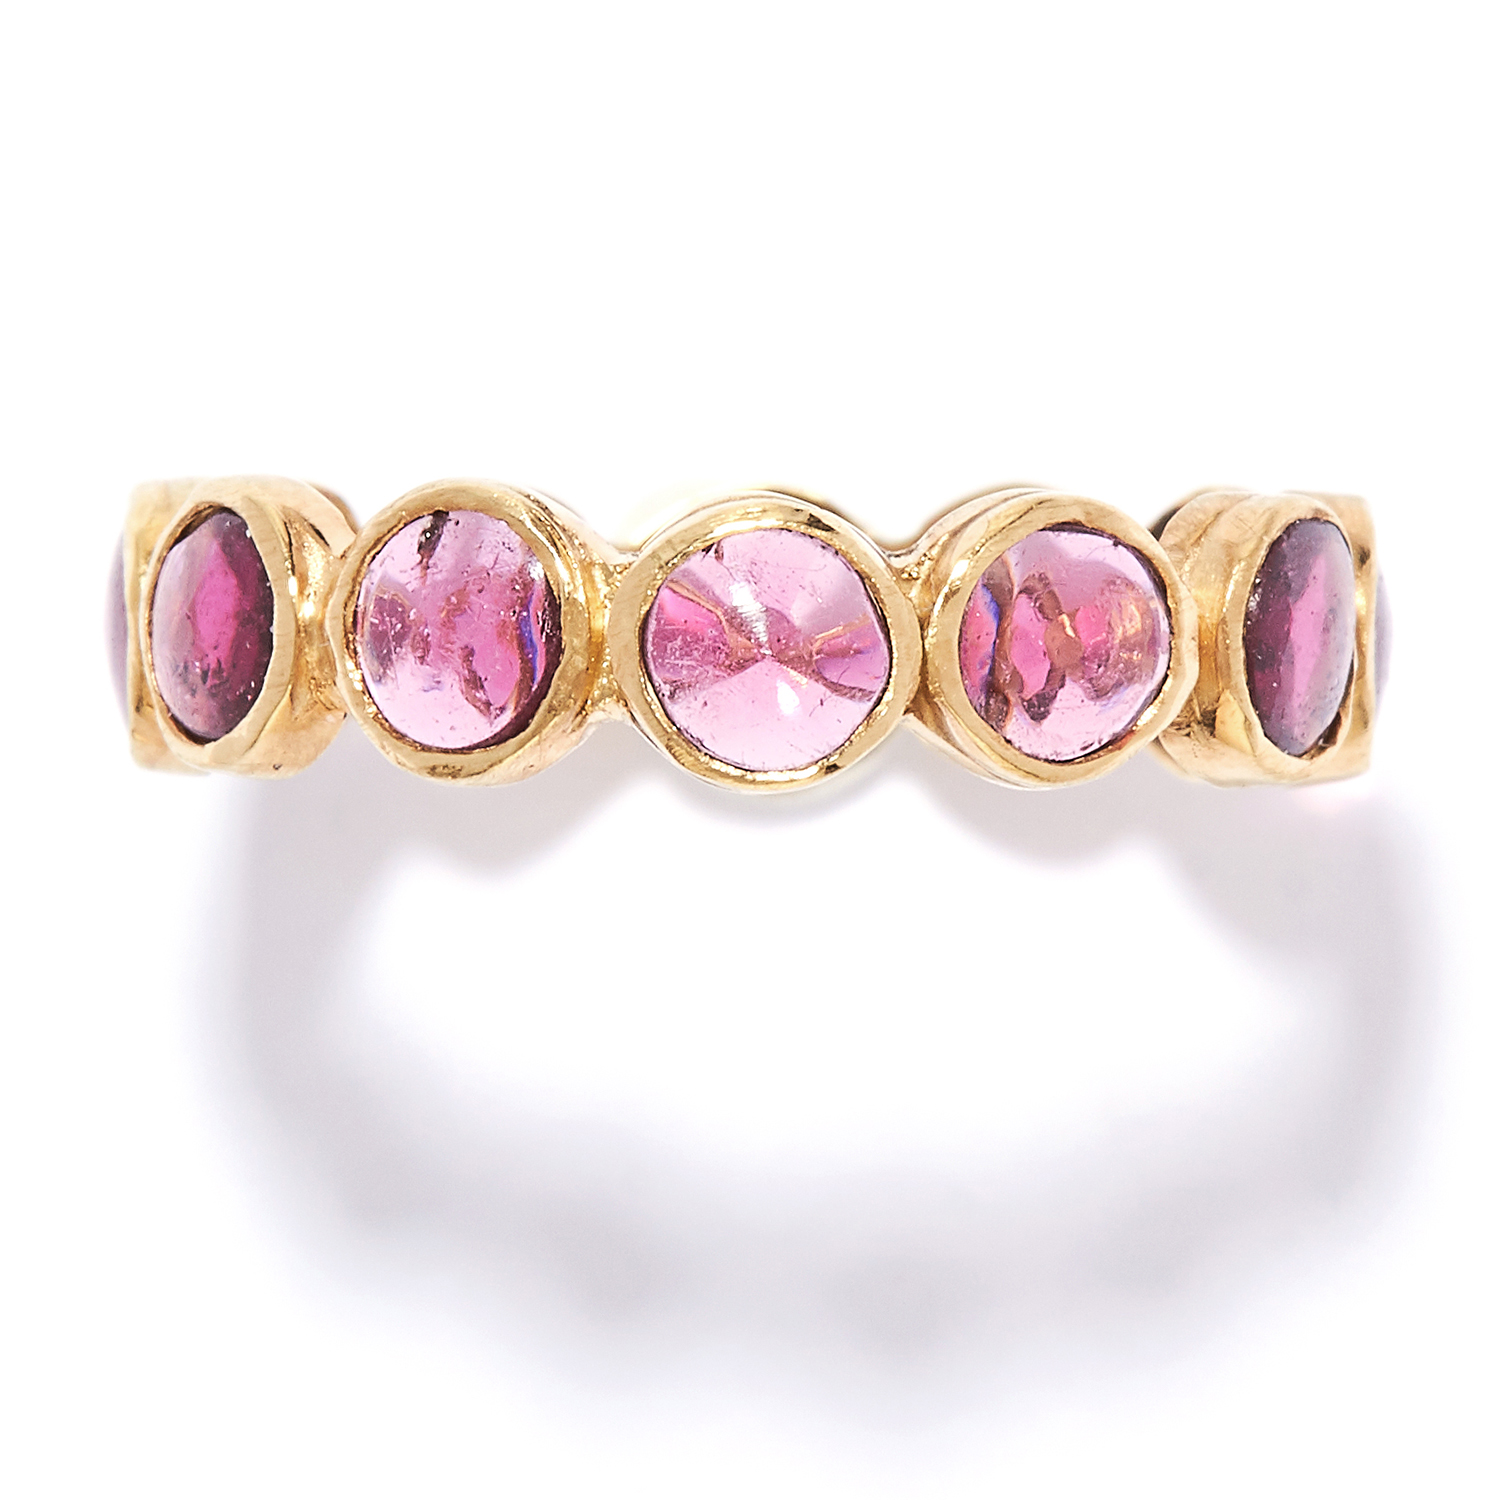 Los 50 - GARNET ETERNITY RING in high carat yellow gold, set with cabochon garnets, unmarked, size N / 7, 1.